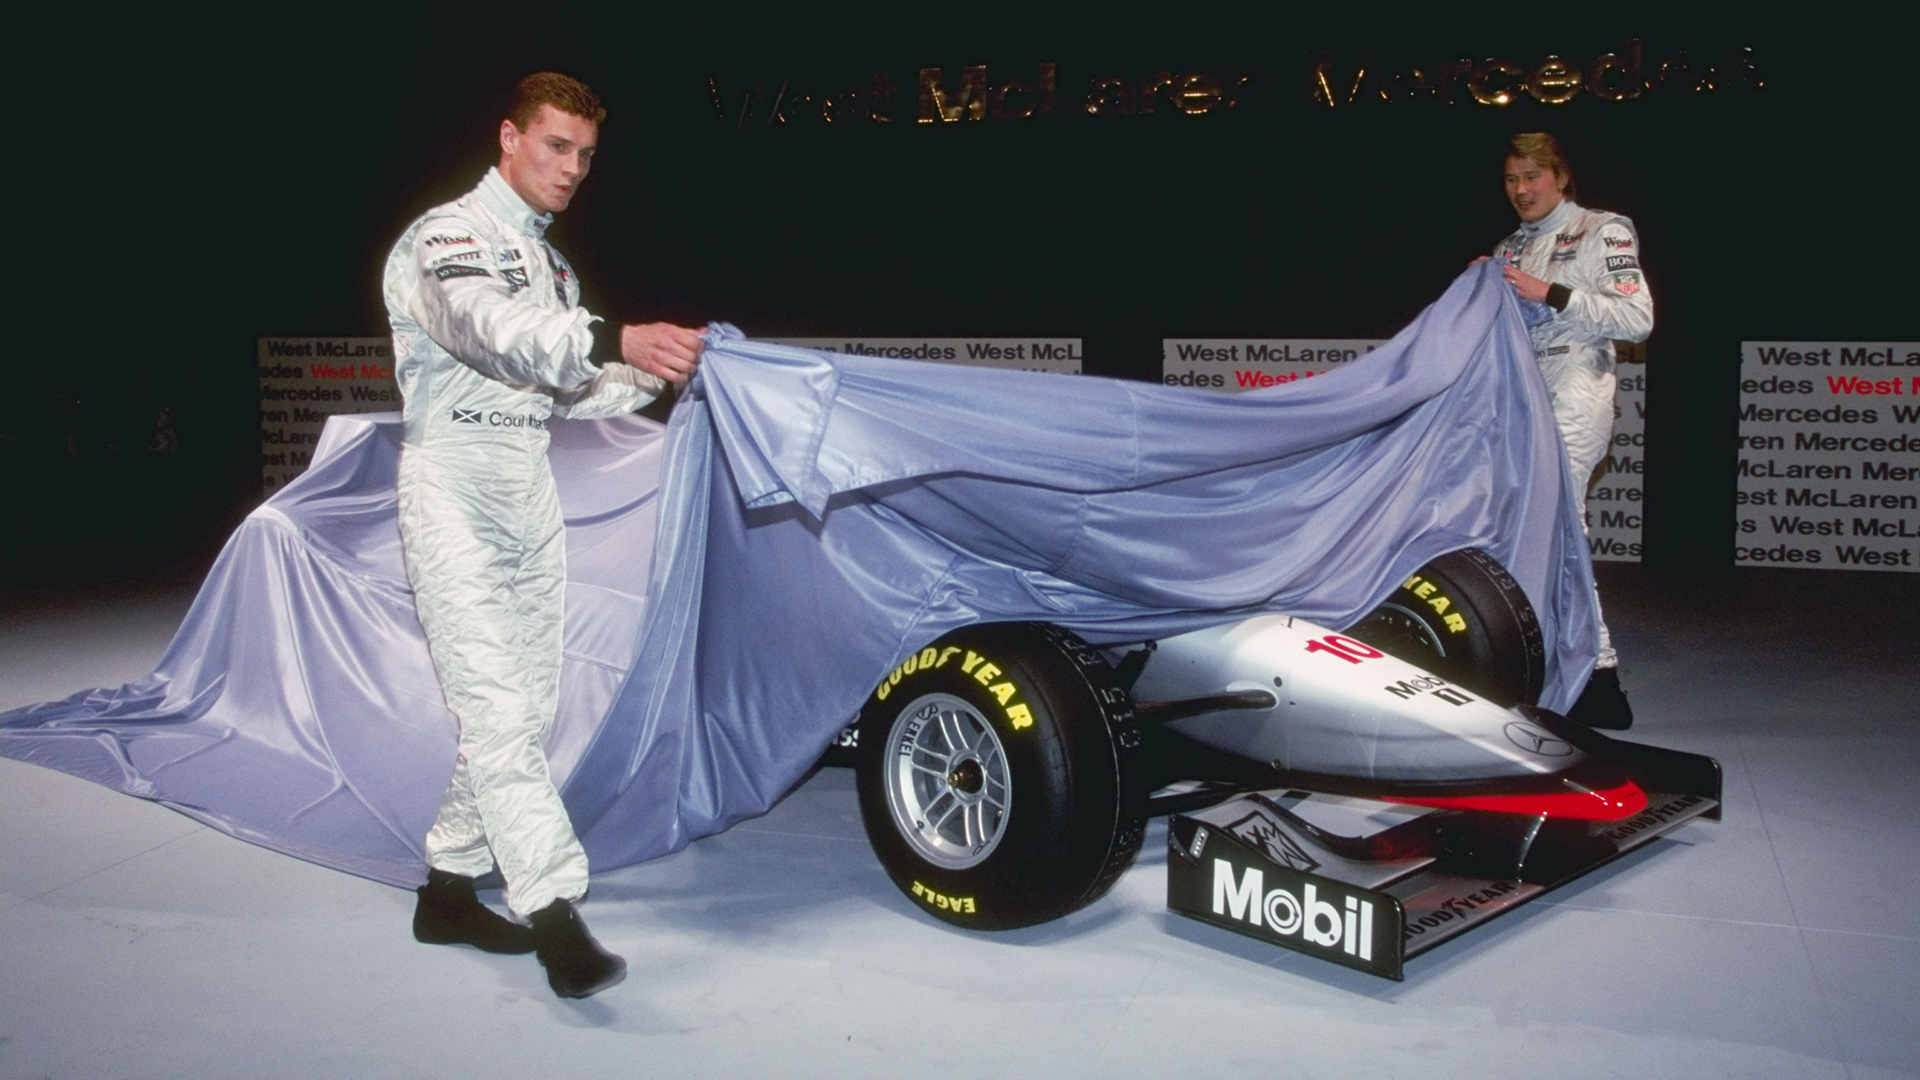 The photo that rocked F1: The story of an ingenious secret McLaren invention – and how it was discovered